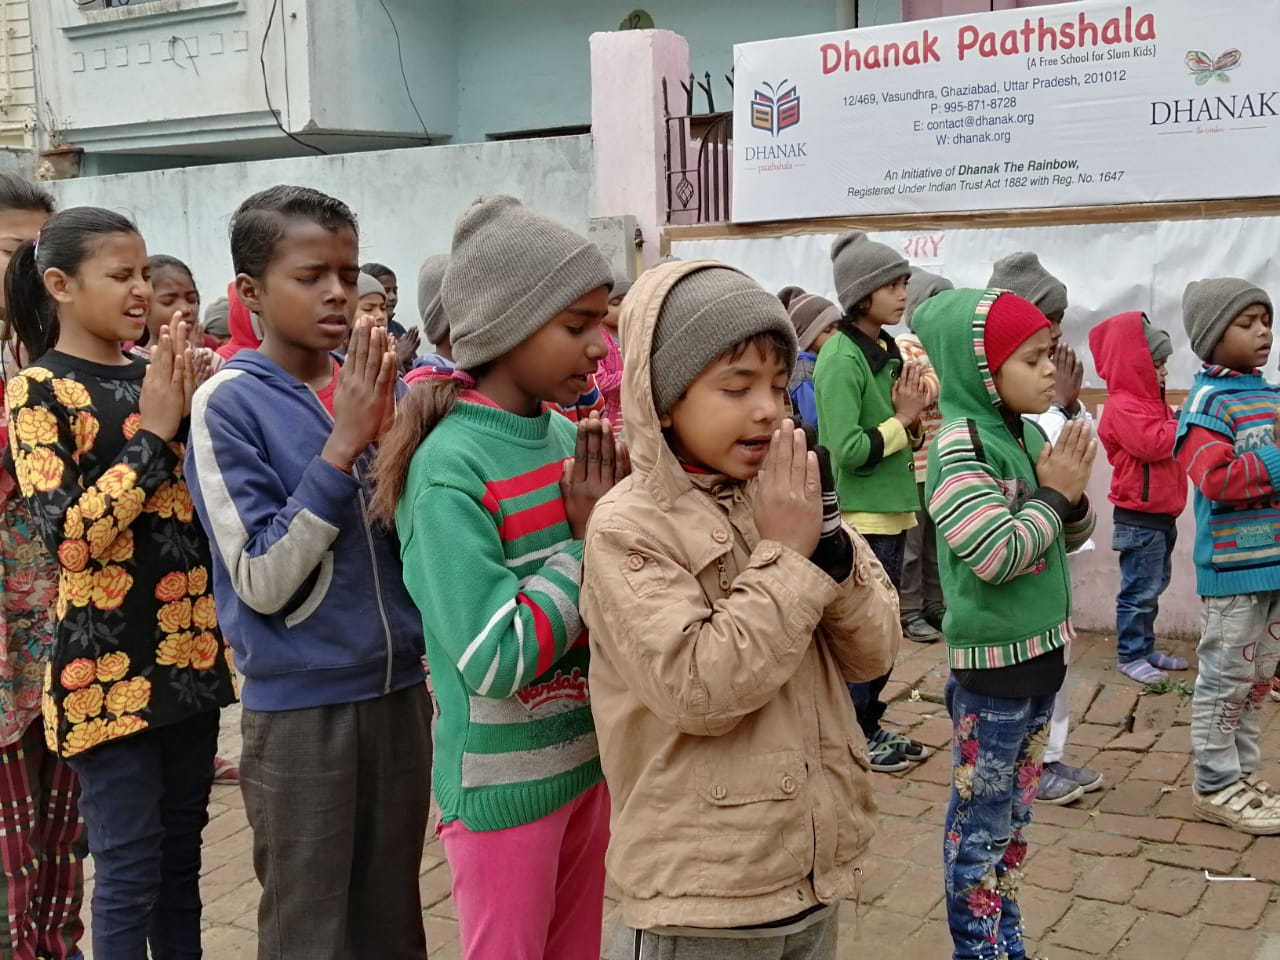 Dhanak Paathshala - Assembly Time